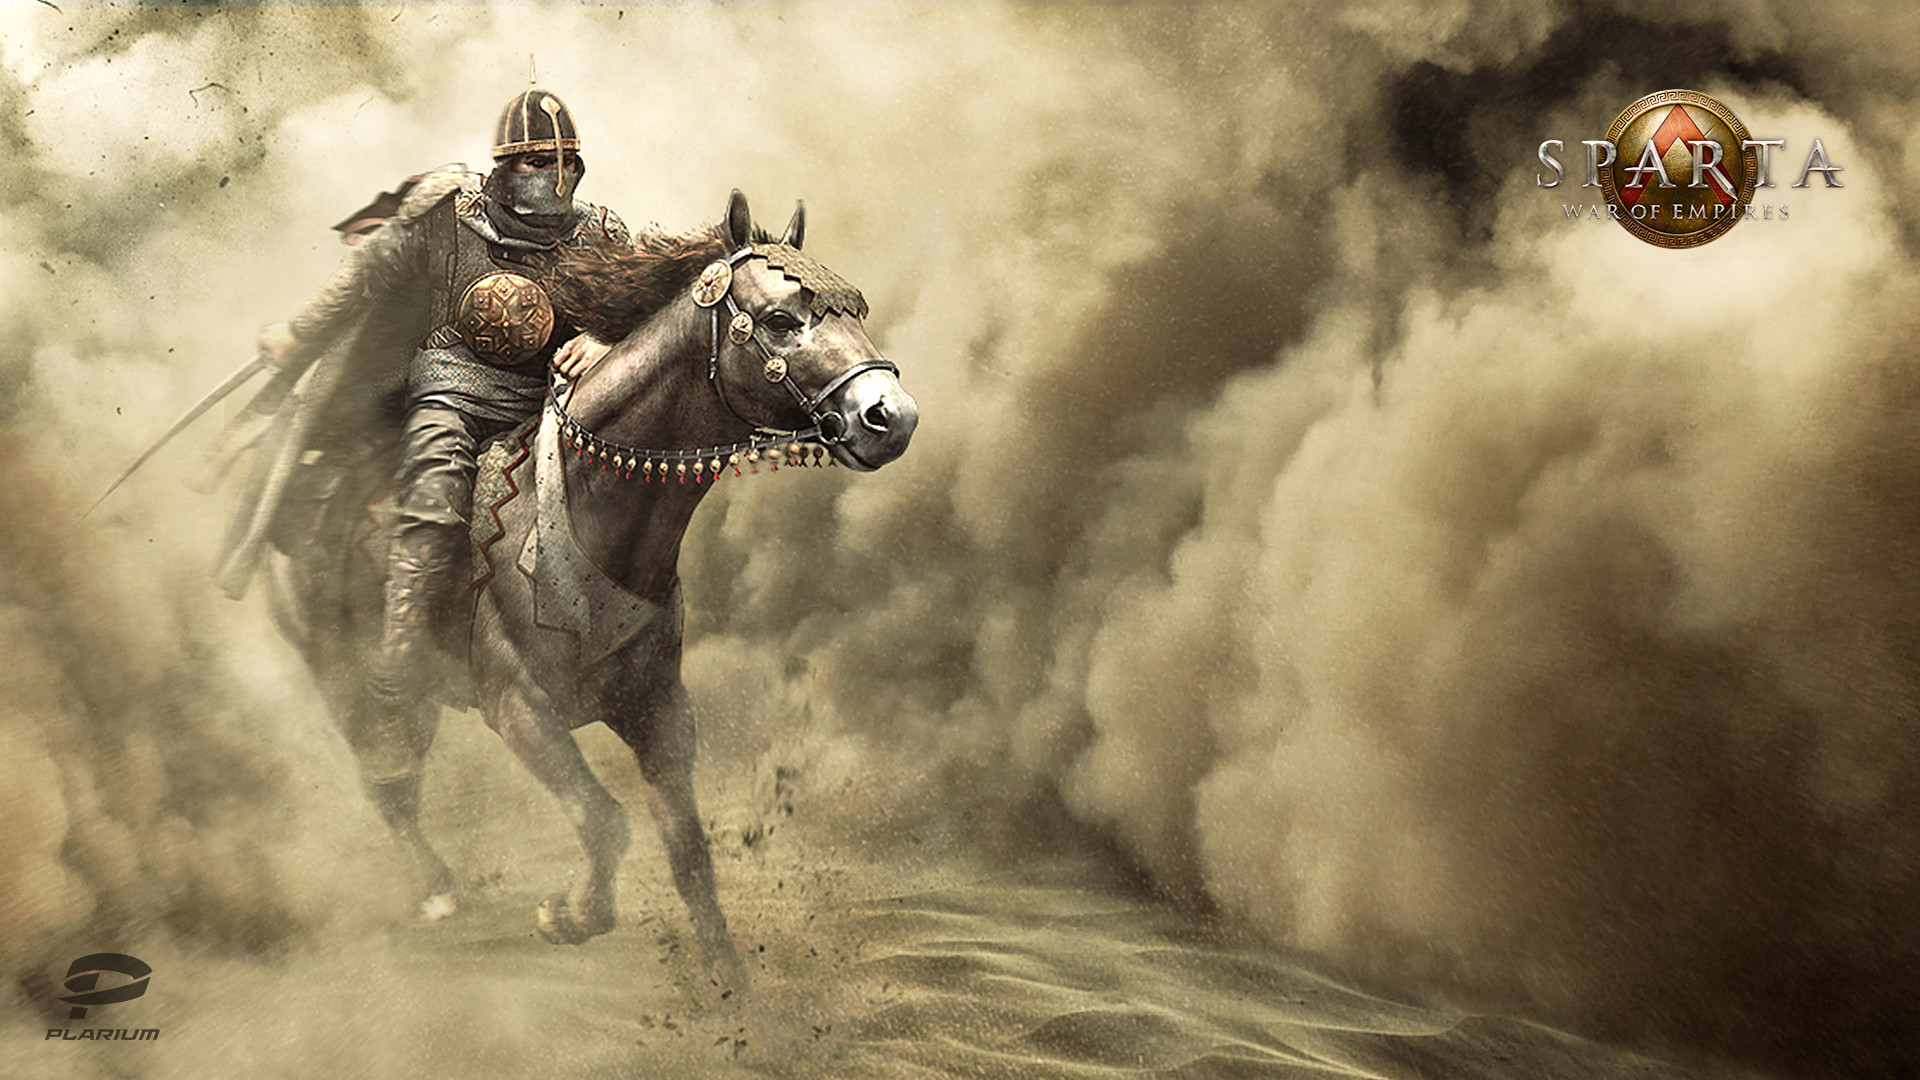 Real Hd Wallpapers 1080p 300 Spartans Wallpaper 57 Images